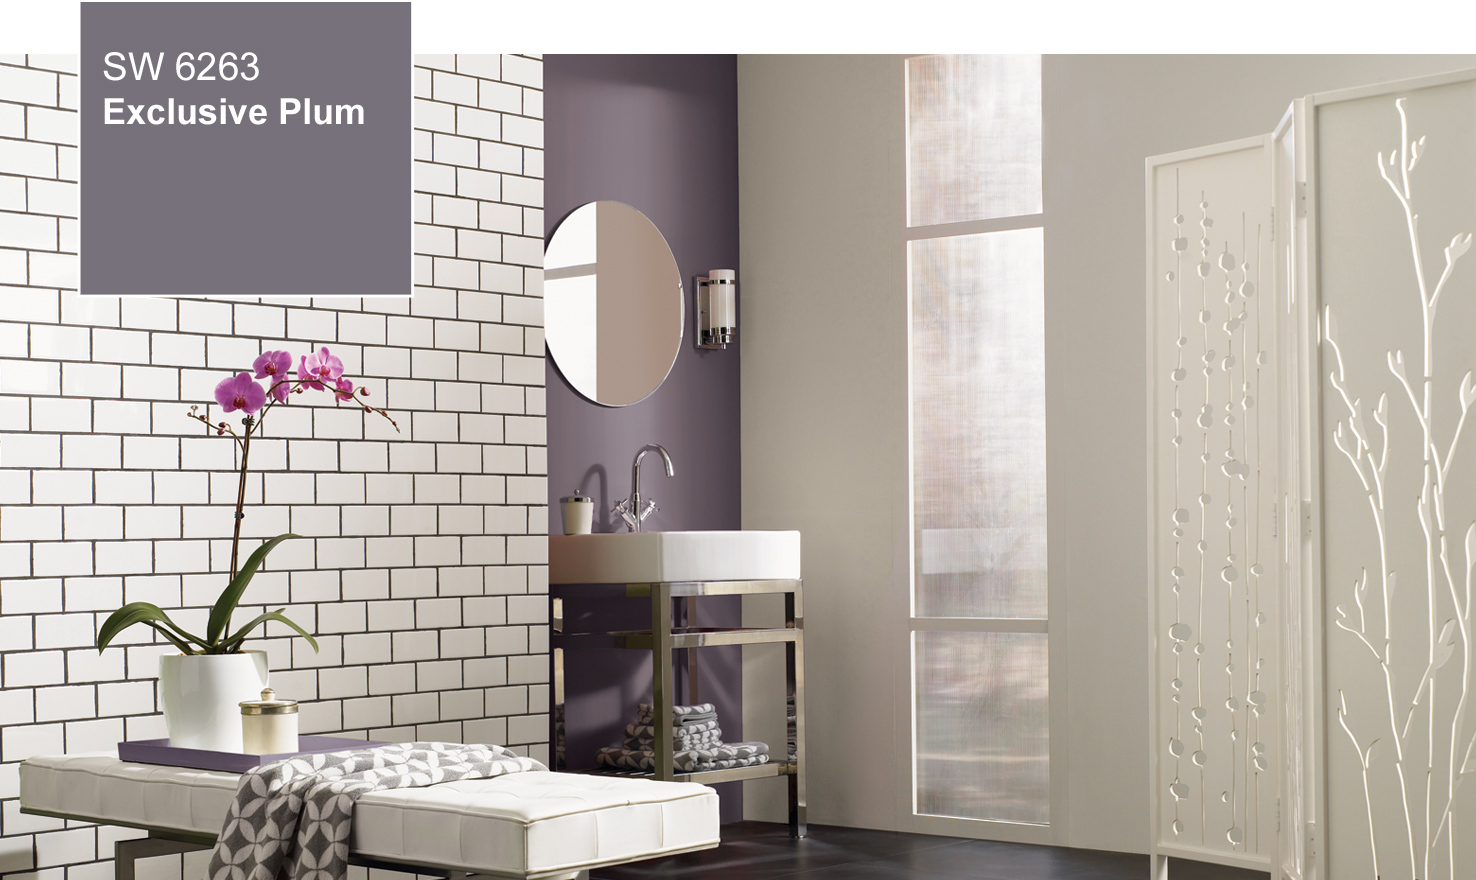 sherwin williams 2014 color of the year exclusive plum alpharetta